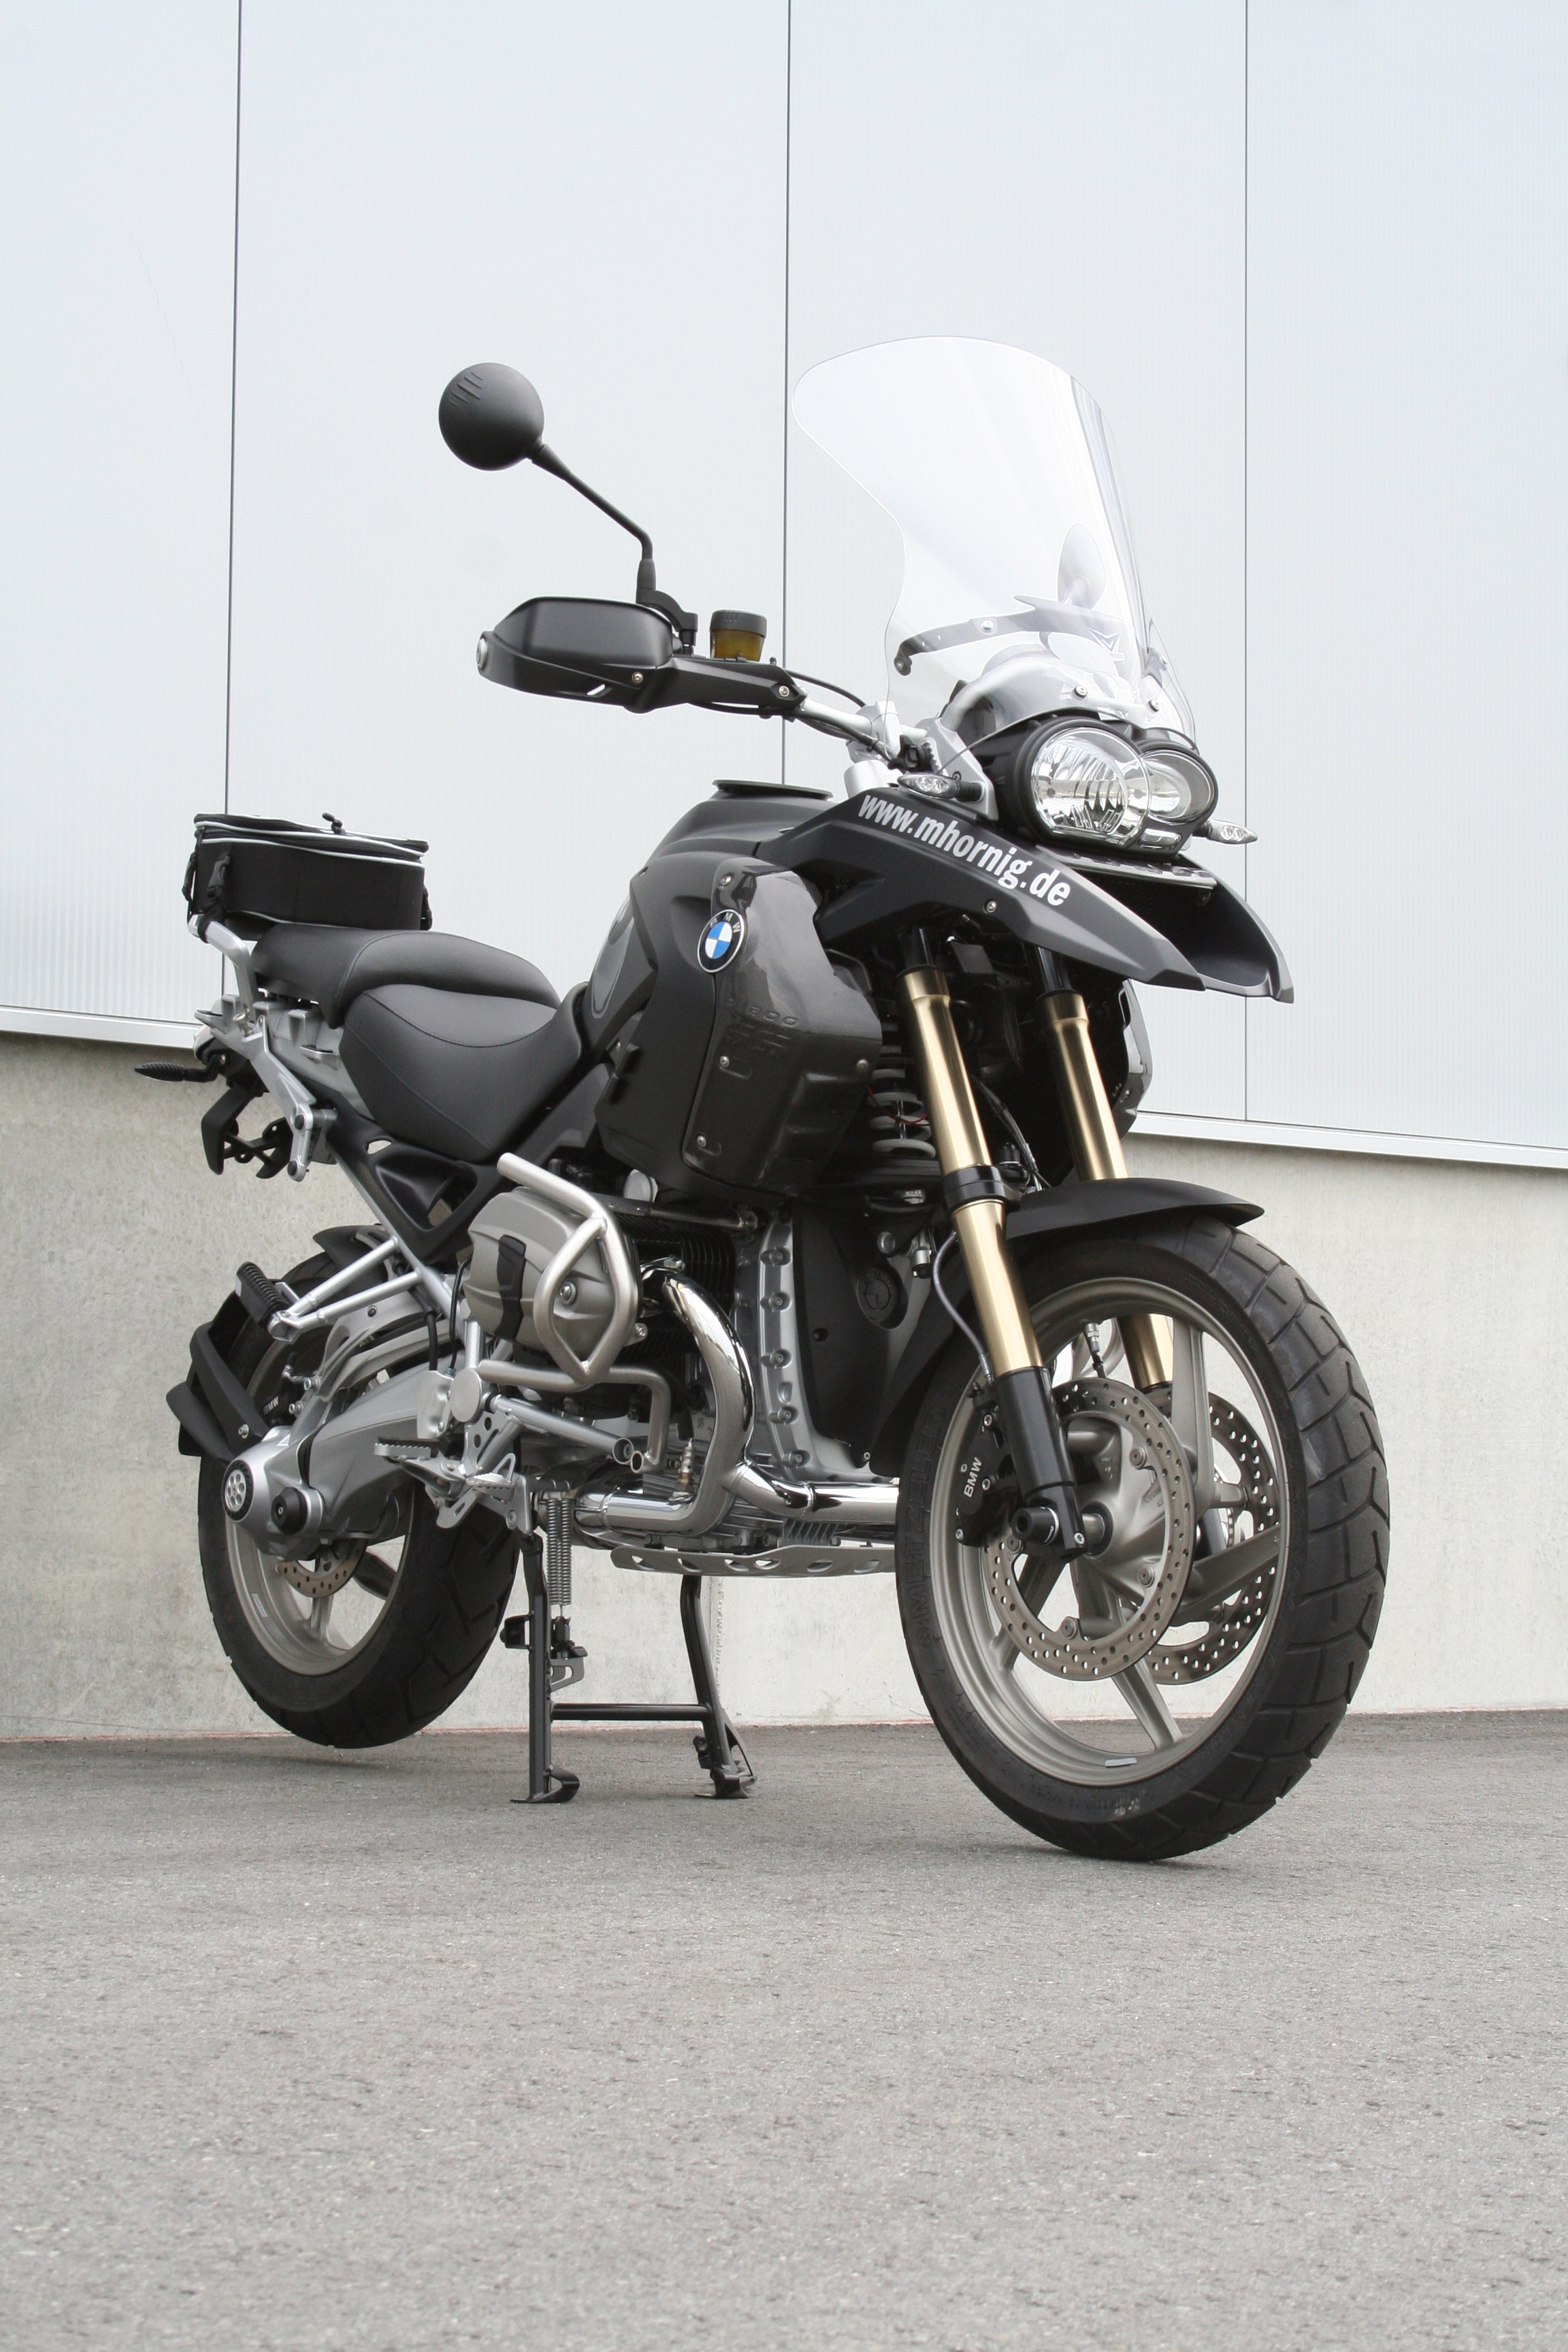 Bmw R1200gs Adventure Triple Black 2017 Review: Hornig BMW R1200GS Conversion The Customised Tourer